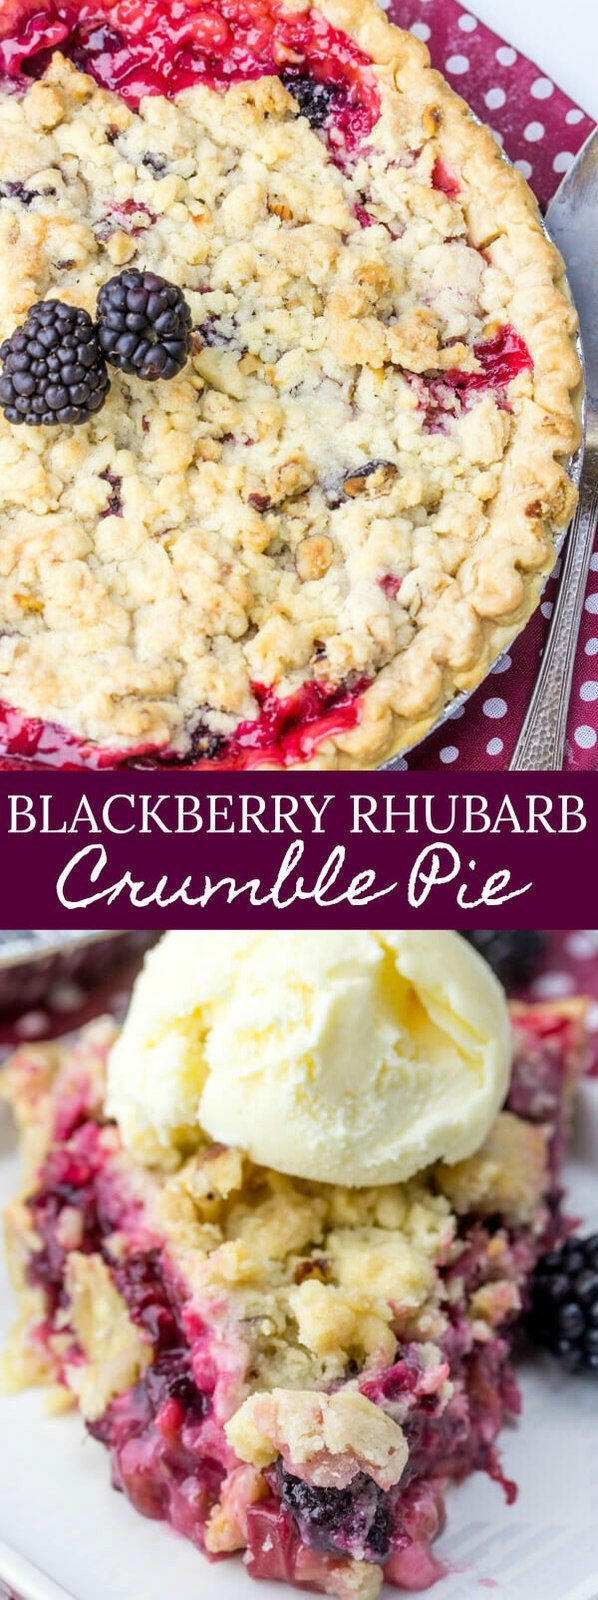 Blackberry Rhubarb Crumble Pie